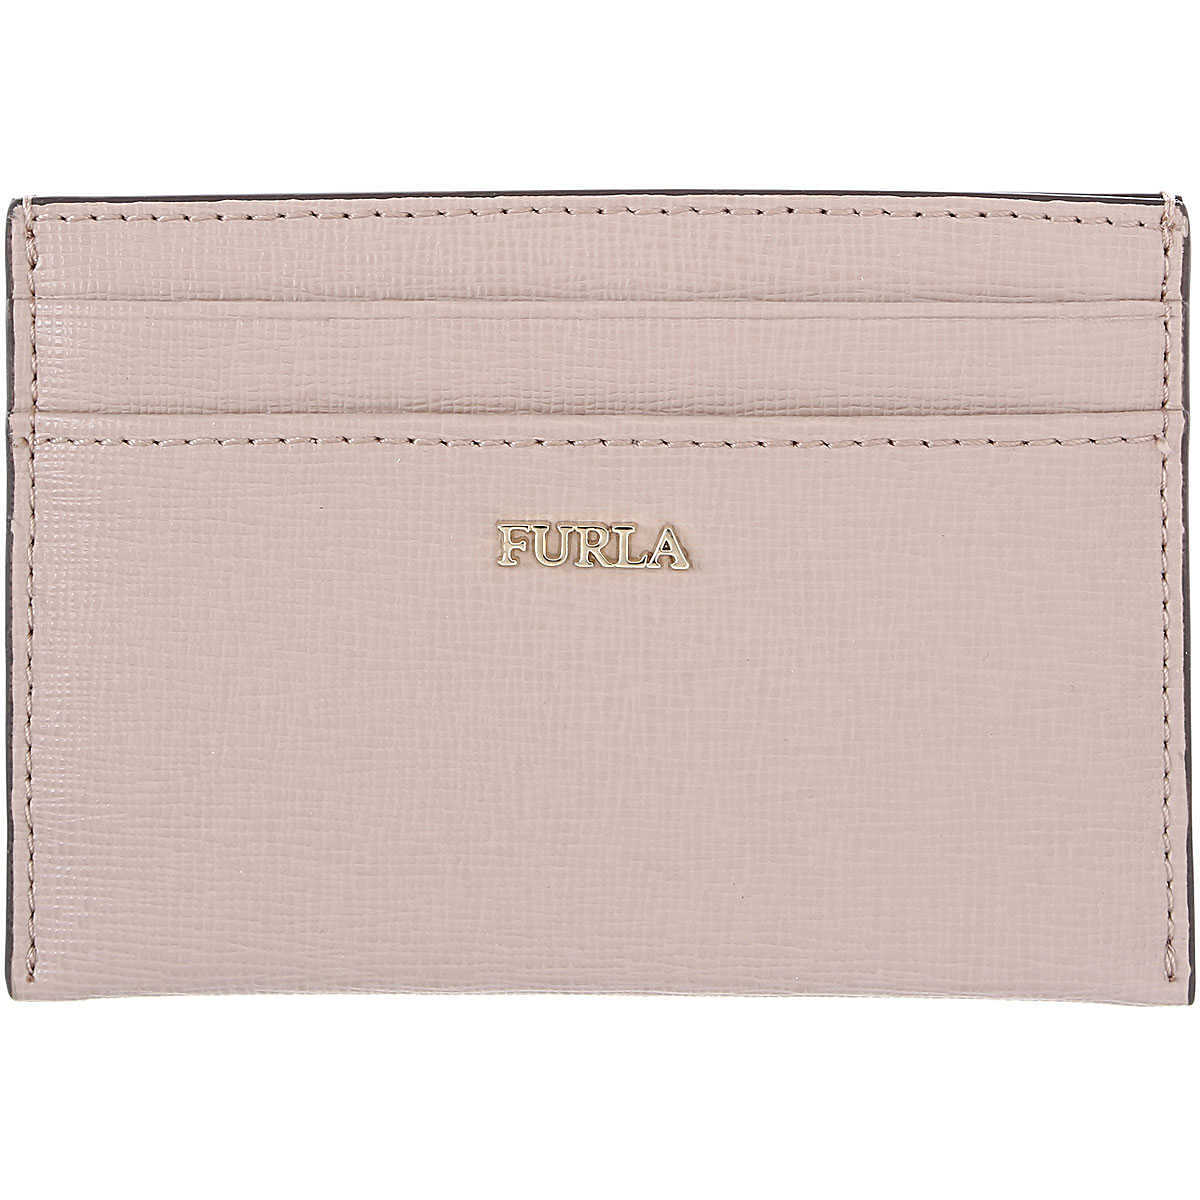 Furla Card Holder for Women Leather Canada - GOOFASH - Womens WALLETS